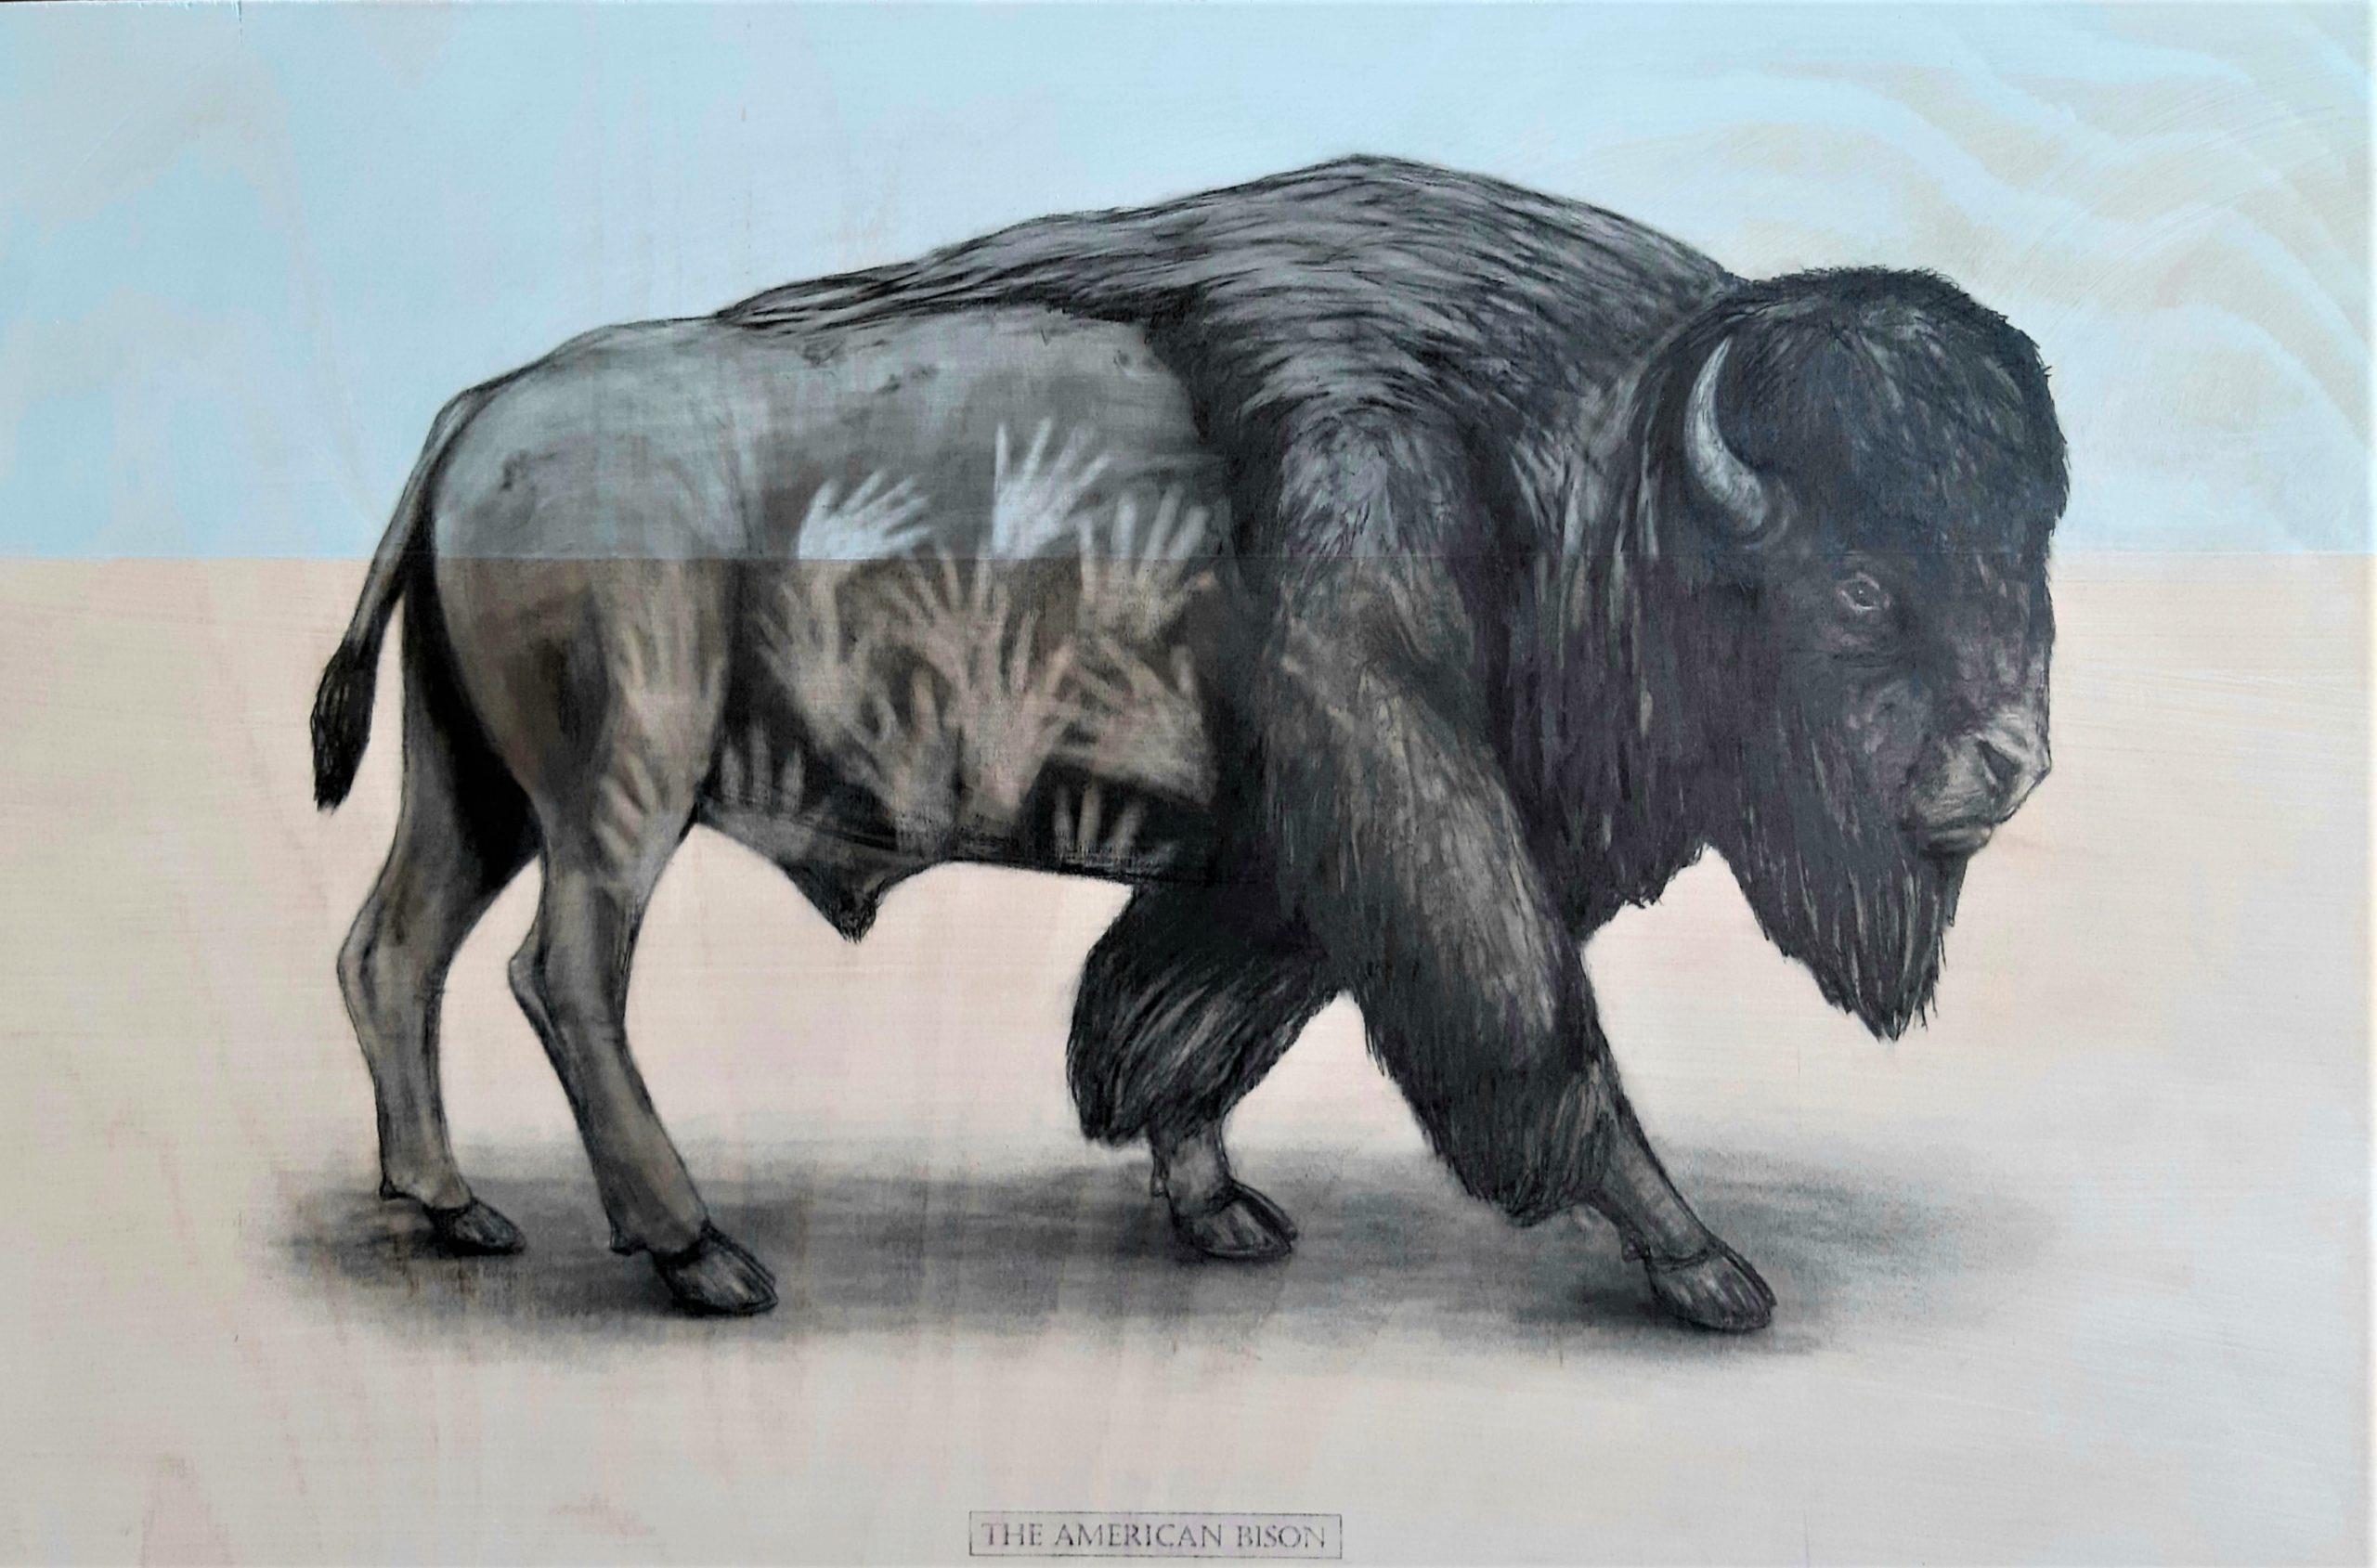 The American Bison, 2020. Graphite and acrylic on plywood. Framed in white varnished obeche. 45 x 65 x 4 cm. £900